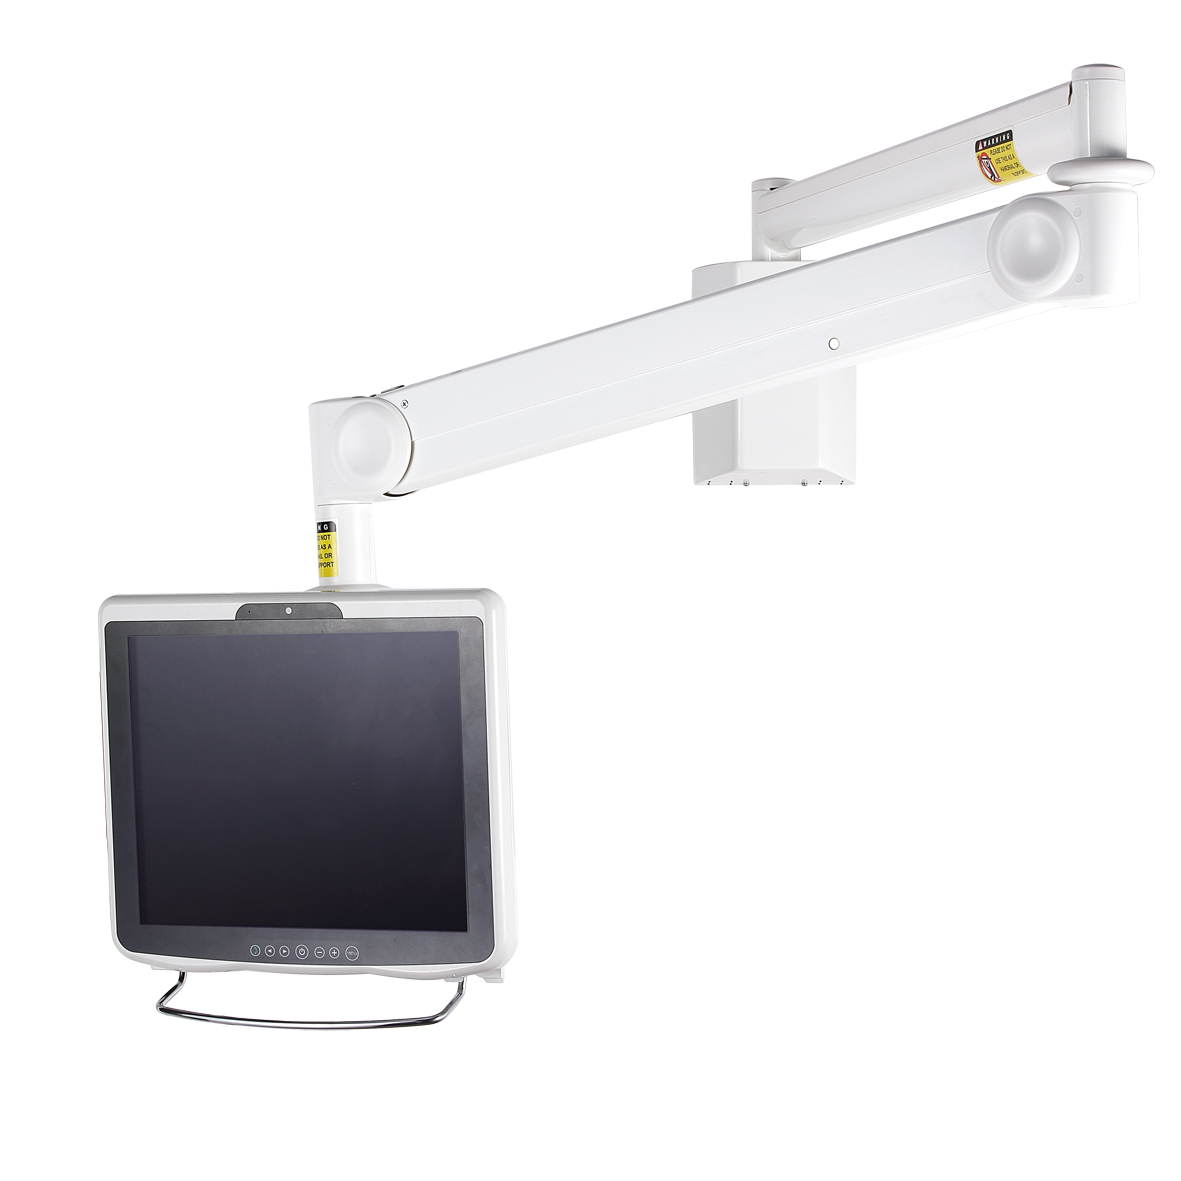 info g arm stand short pole w spring quick ceiling dm monitor release mount desk product id dual connect content